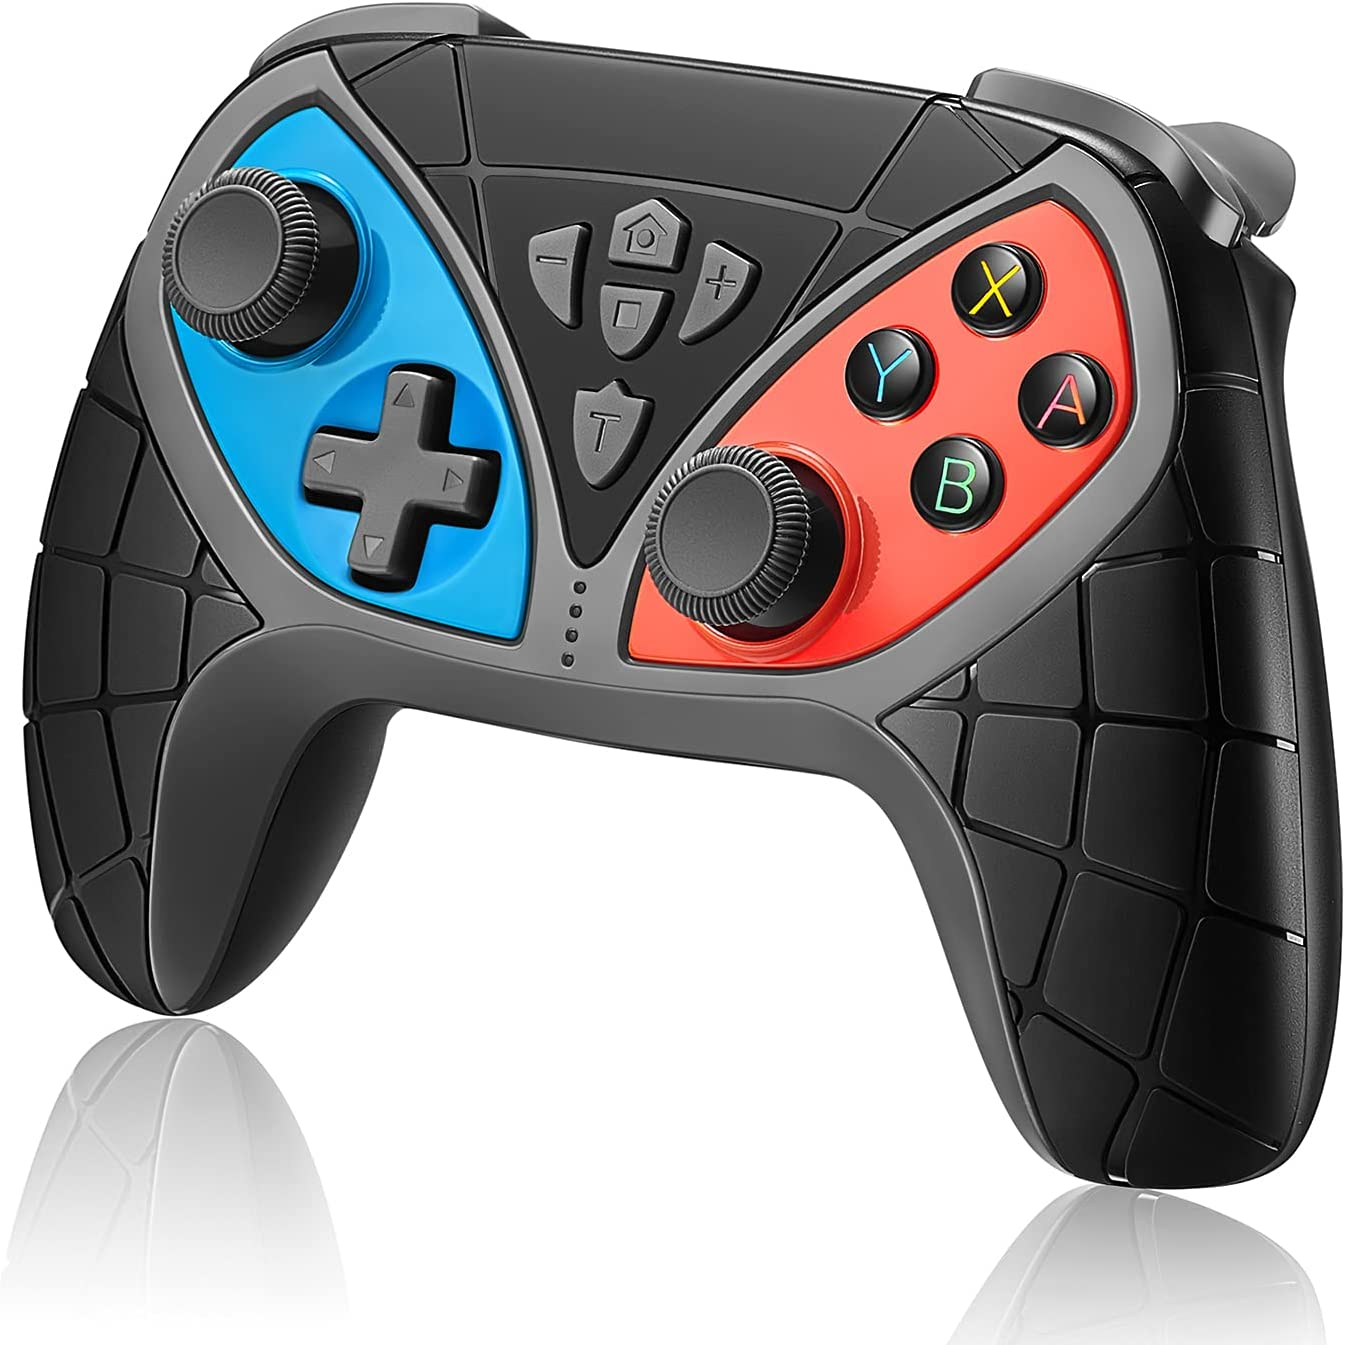 Wireless Controller for Switch, Aikufe Bluetooth Game Pro Controller Gamepad Remote Compatible with Switch/Switch Lite with Turbo, Dual Vibration, Six-axis Motion, Programming and Screenshot Functions